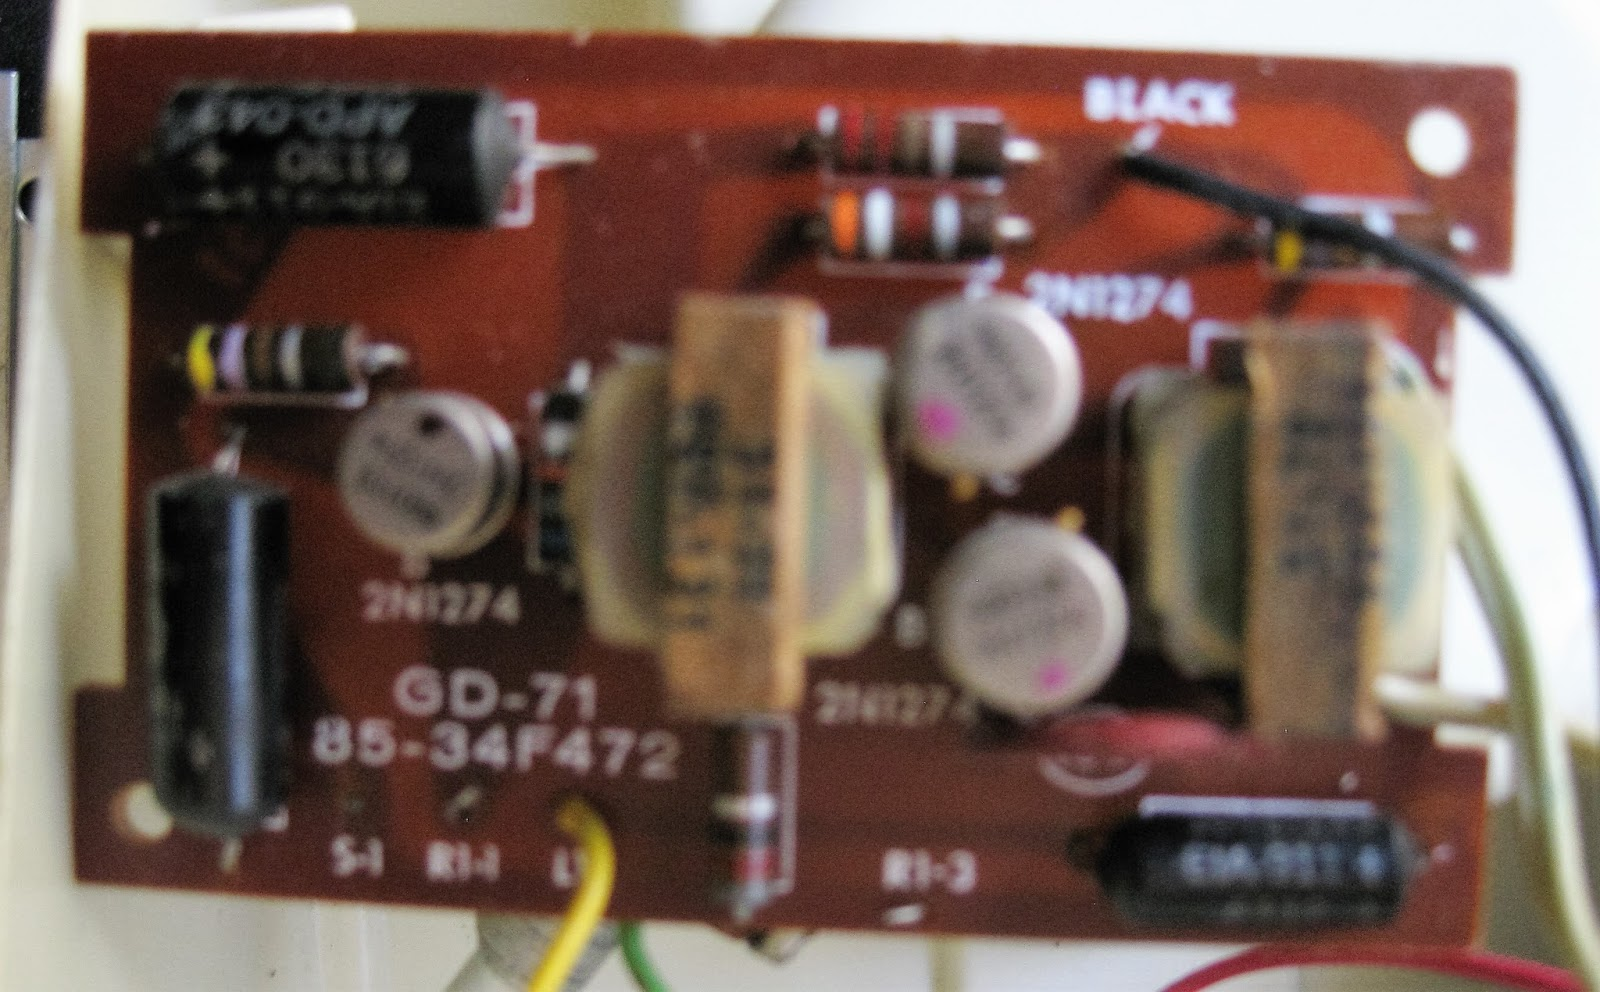 Diy Guitar Amp Hacks Few Transistor Amplifier Circuits All Of The Telephone Amplifiers Had Typical Circuit Design Except For Ampliphone And Heathkit Amps Which 1 Less Driving First